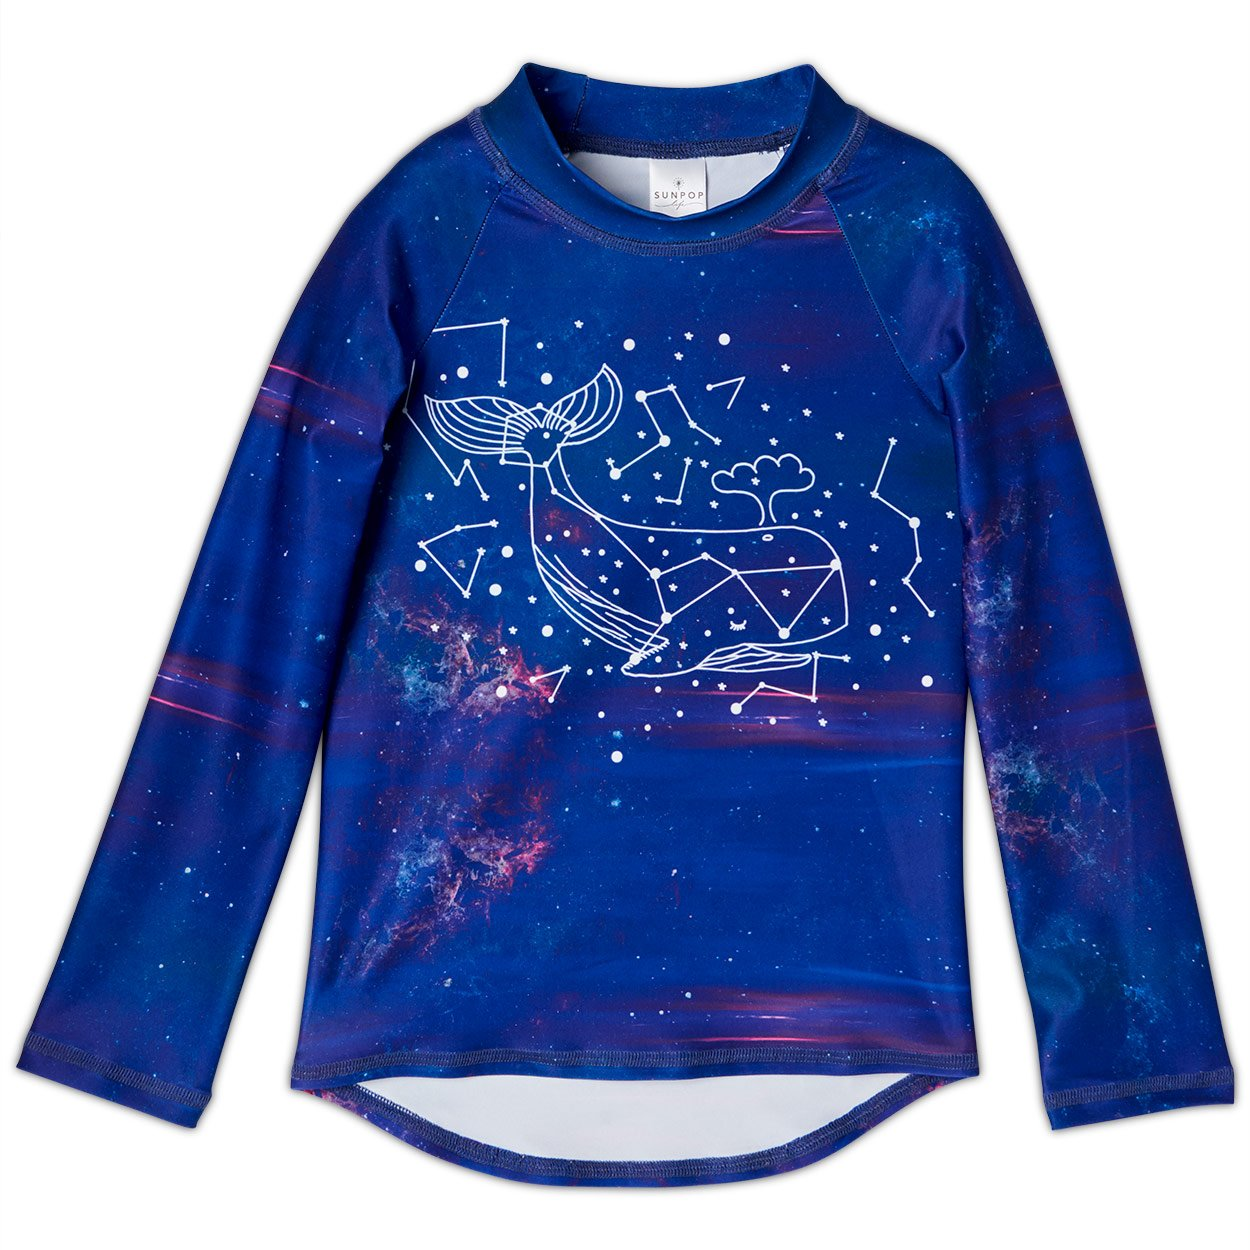 Whale Long Sleeve Rash Guard Top UPF 50+